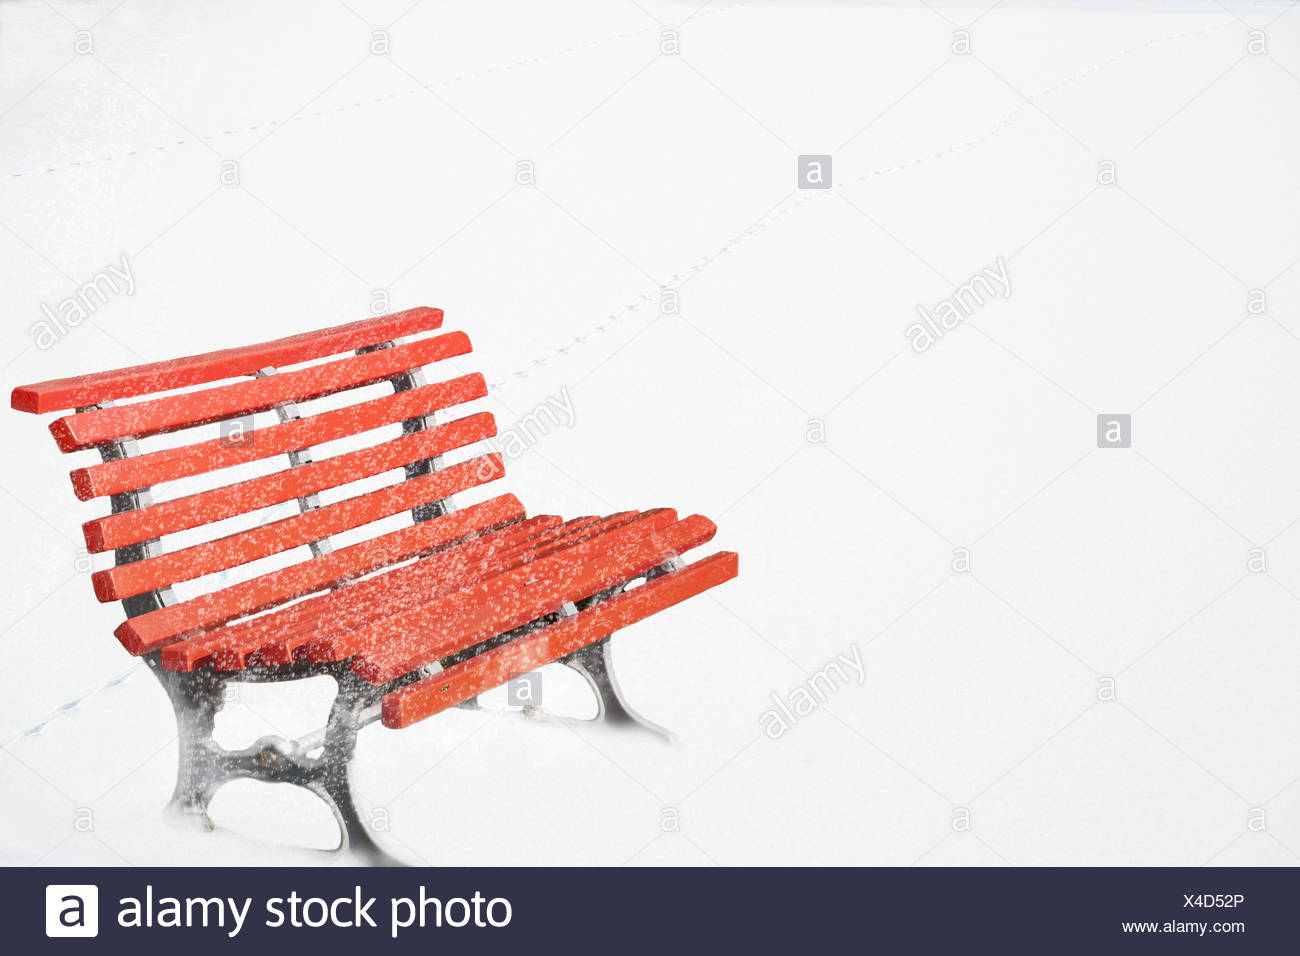 Red saddle, snow, winter, bank, garden bench, park-bench, red, blank, nobody, sit rest, rest, conception, unoccupied, white, radiant, contrast, colour, Colourfully, cut out, copy space, rib bank, seasons, snowfall, snow surface, snowflakes, tracks, animal tracks, - Stock Image